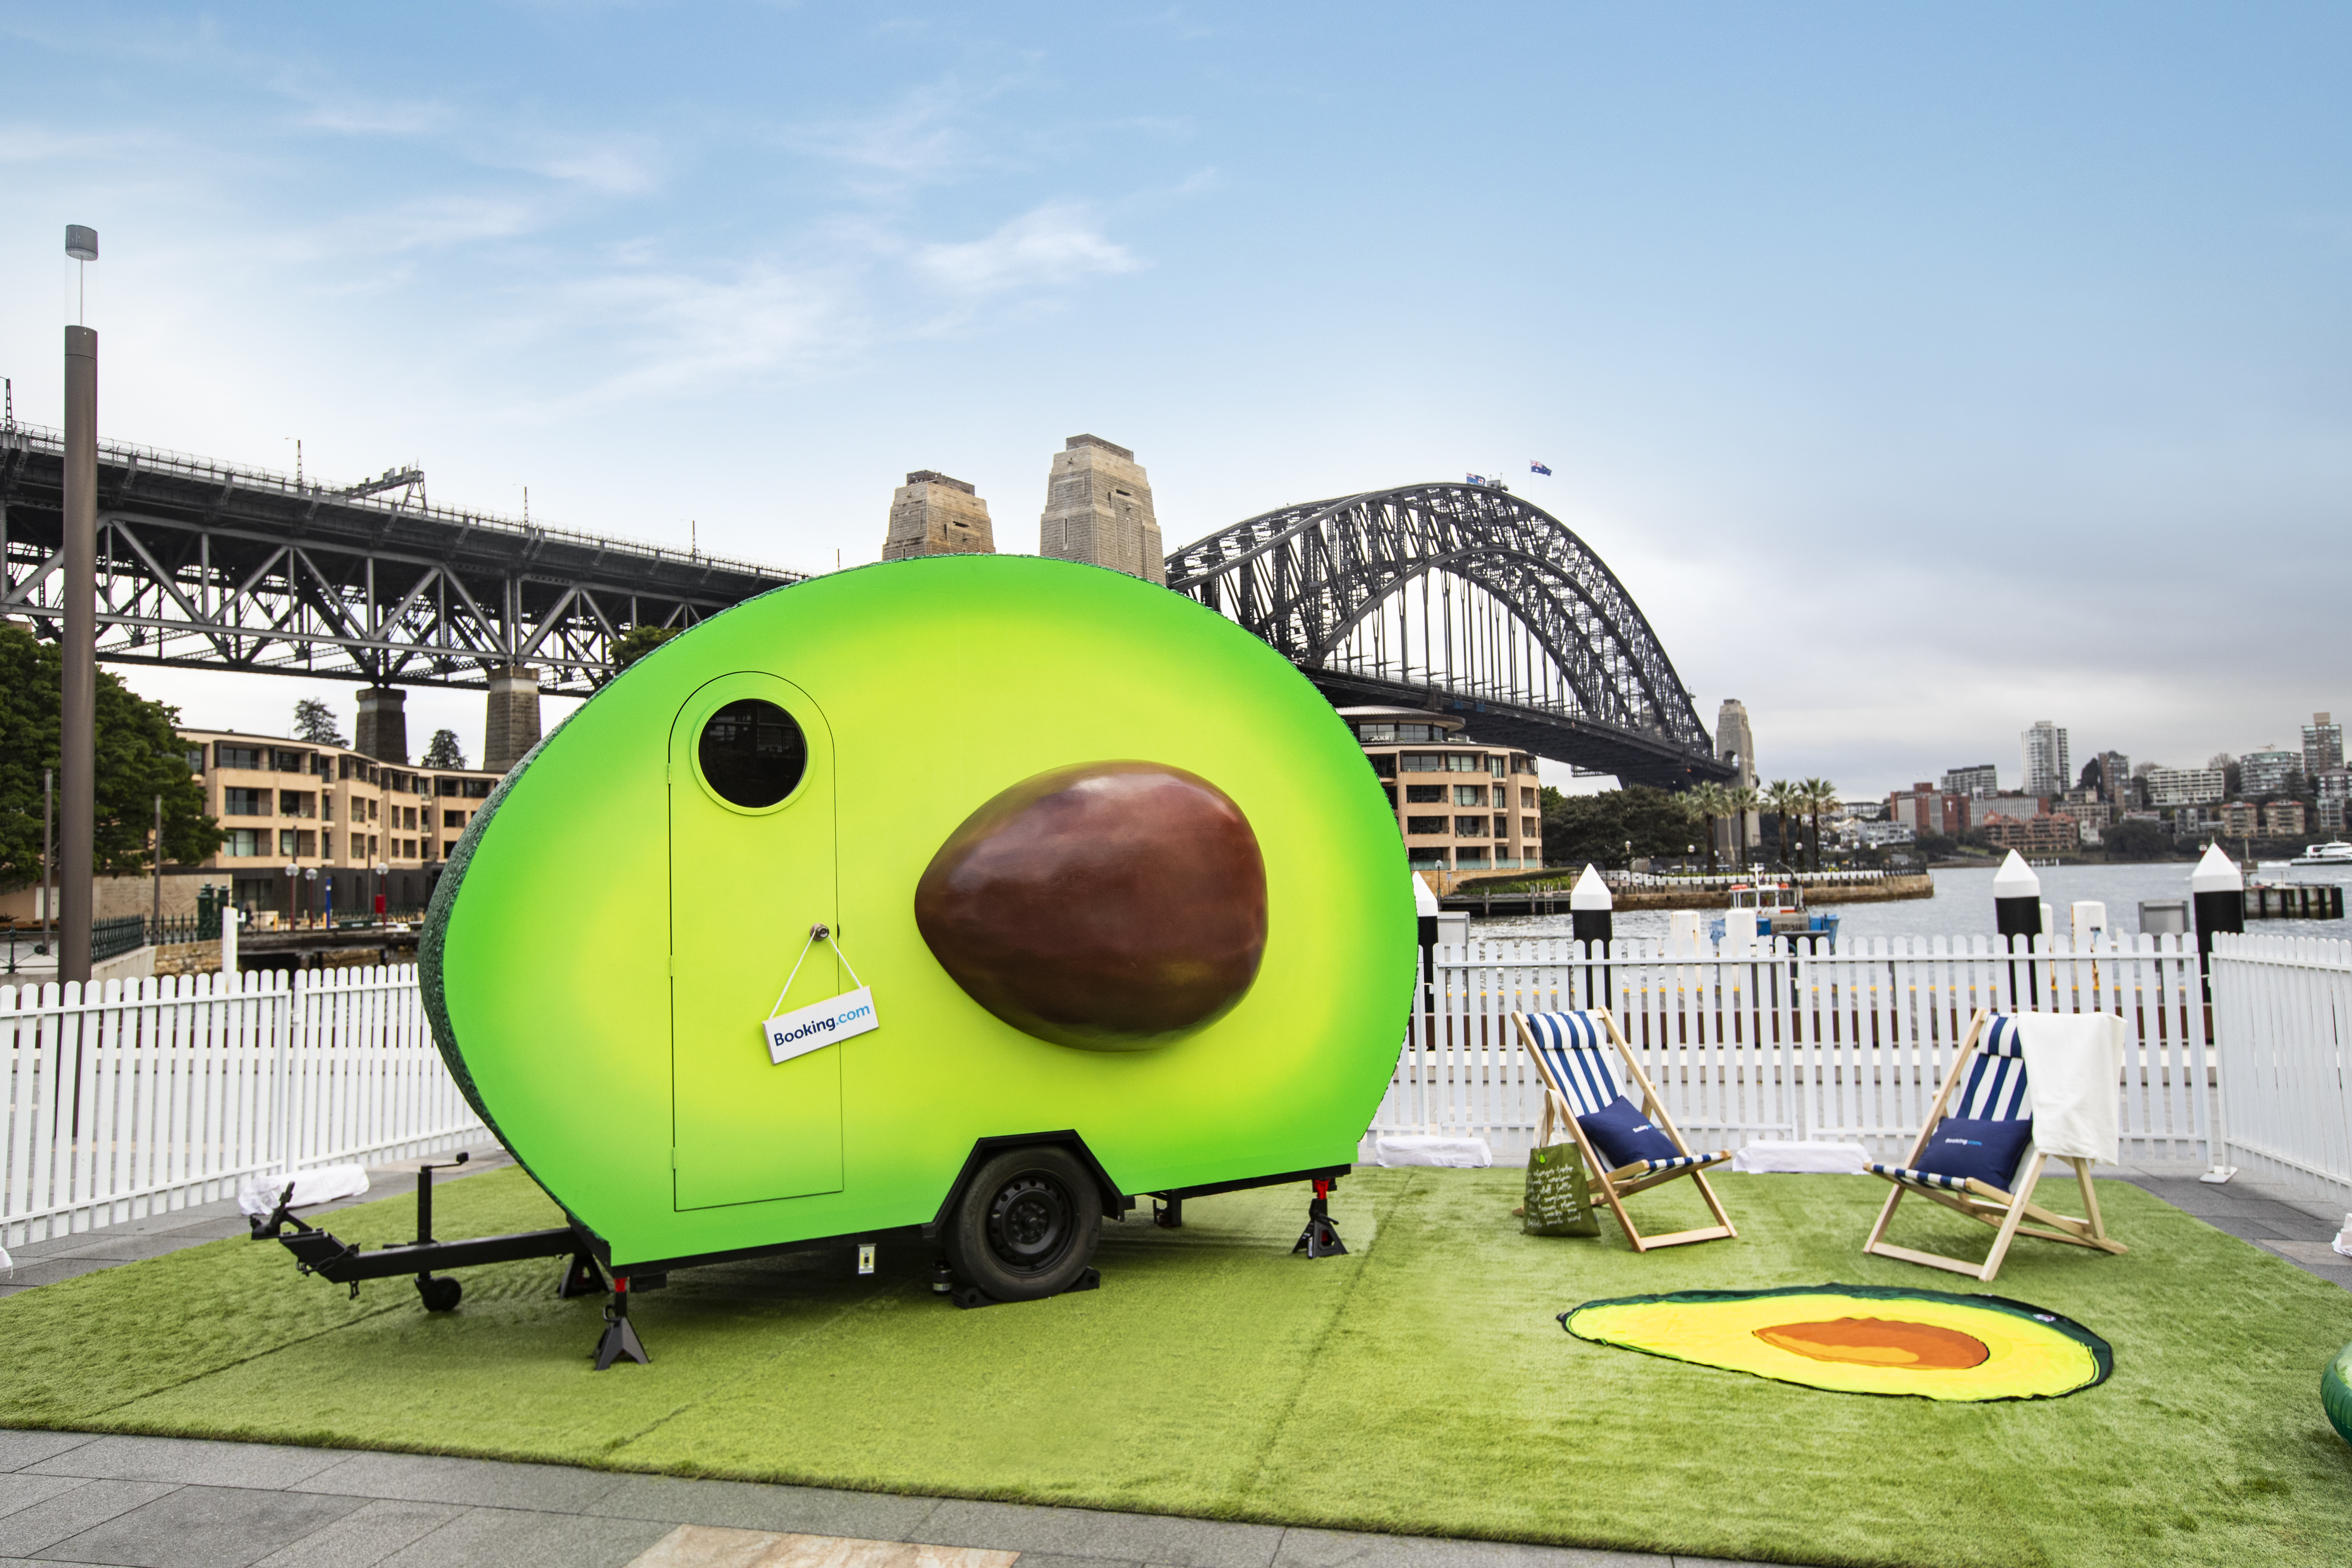 Booking.com gives Aussies the chance to stay in a giant avocado for a day